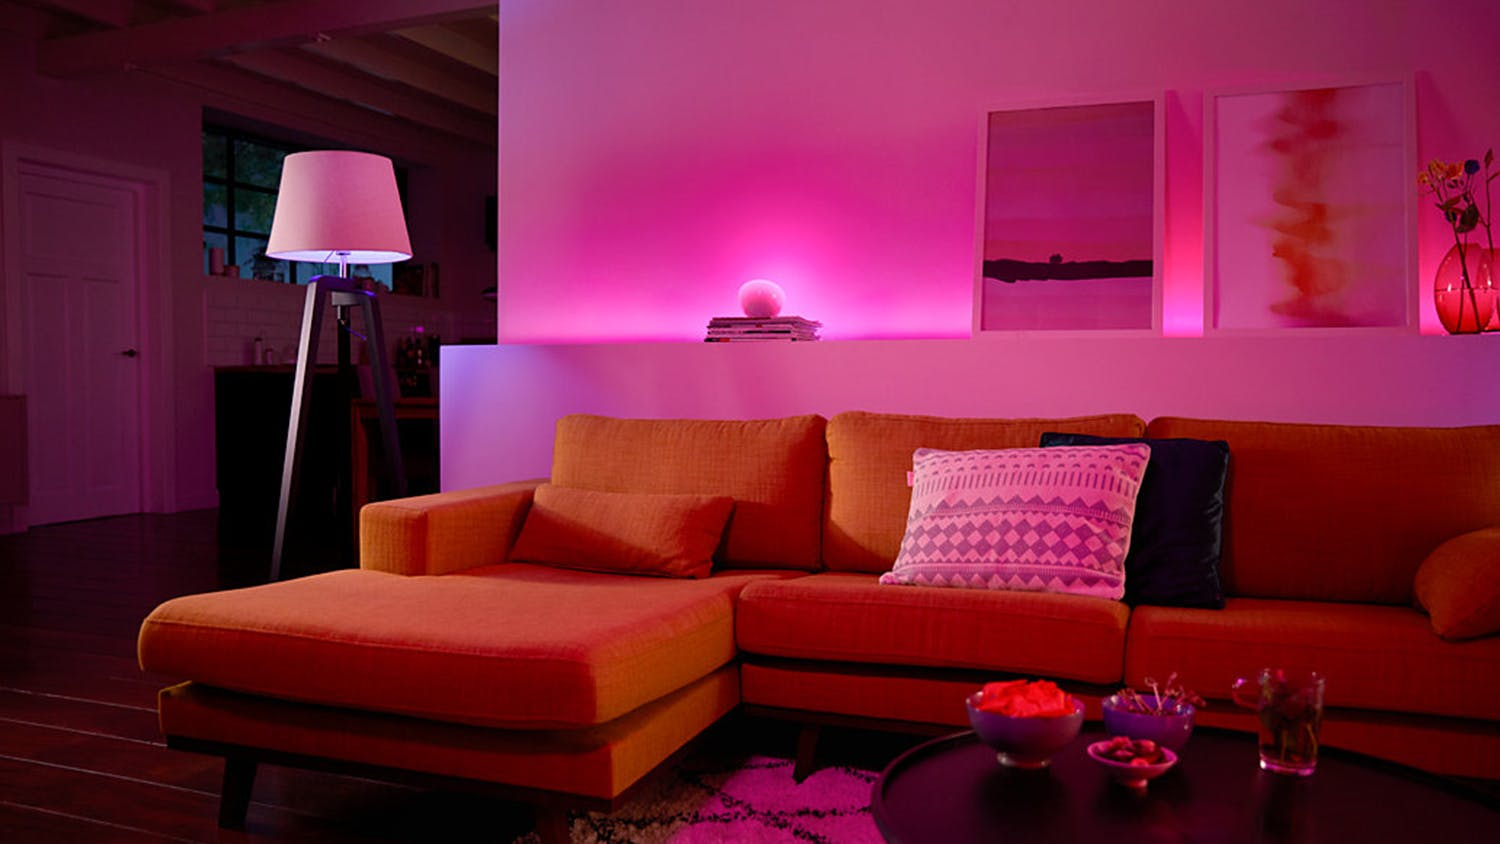 Philips Hue White and Colour Ambiance Single E27 Light Bulb